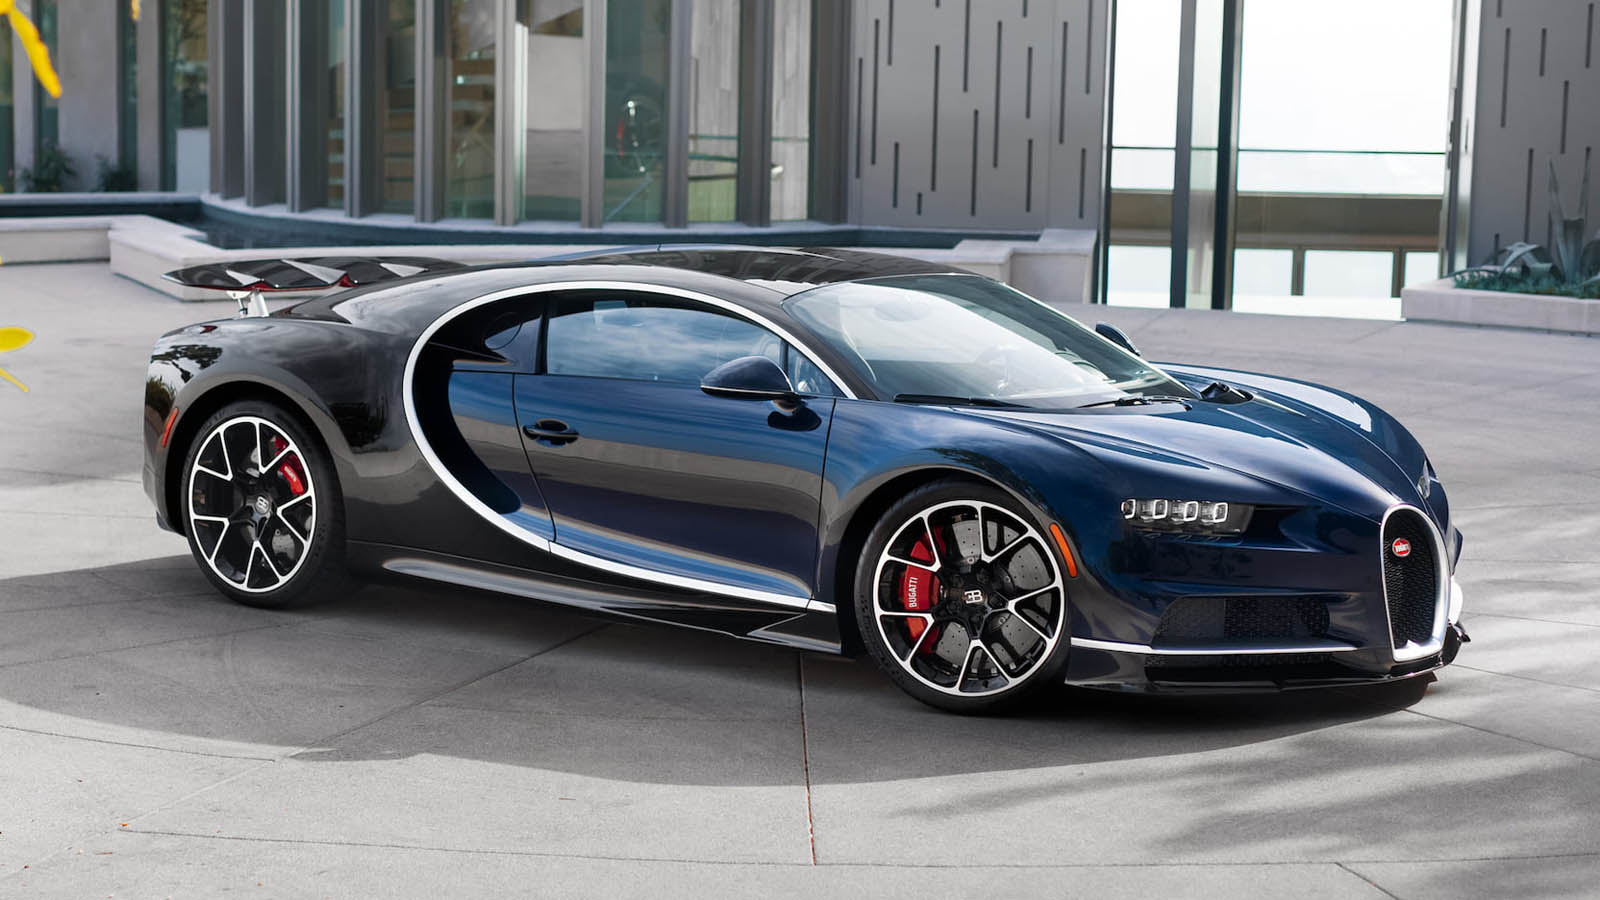 Bugattis For Sale >> Want A Bugatti Chiron? This One's Coming Up For Auction In Florida | Carscoops